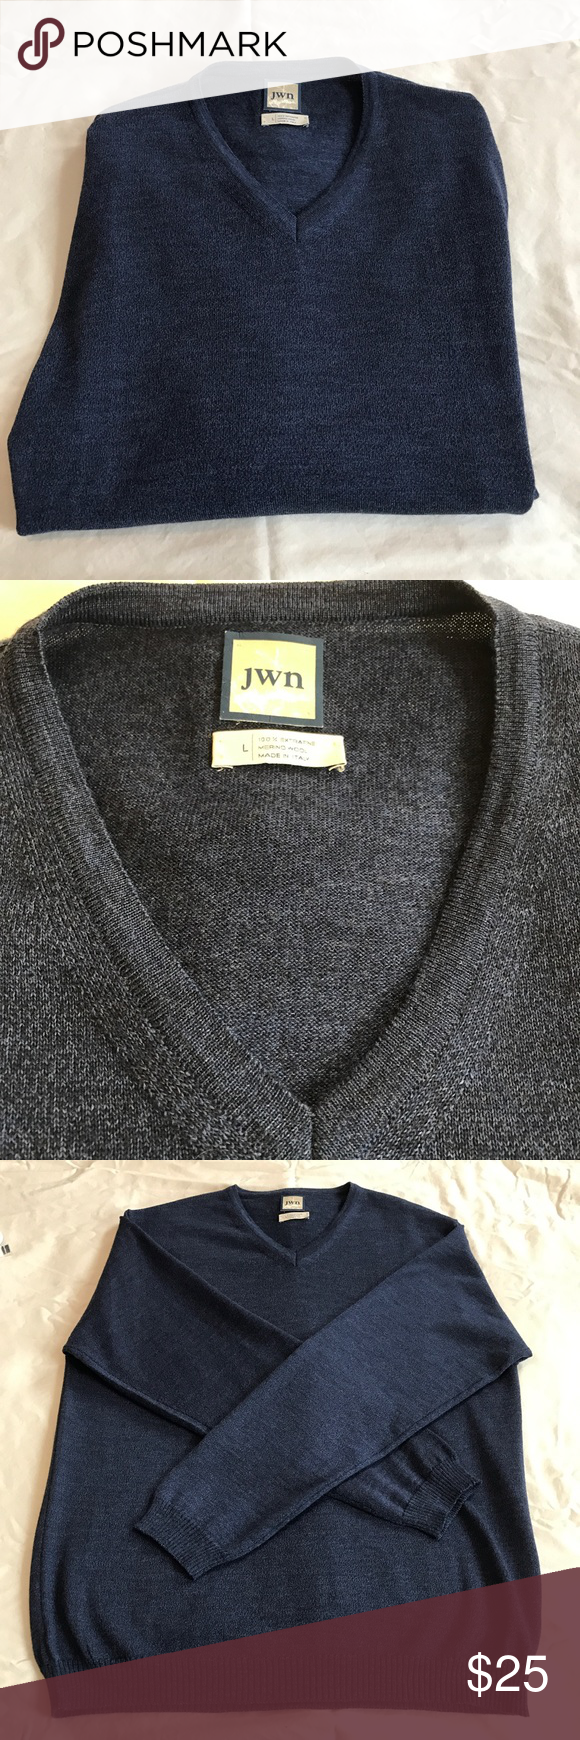 Men's pullover sweater JWN Nordstrom men's v neck sweater light in weight 100% extra fine merino wool made in Italy great buy like new John W. Nordstrom Sweaters V-Neck